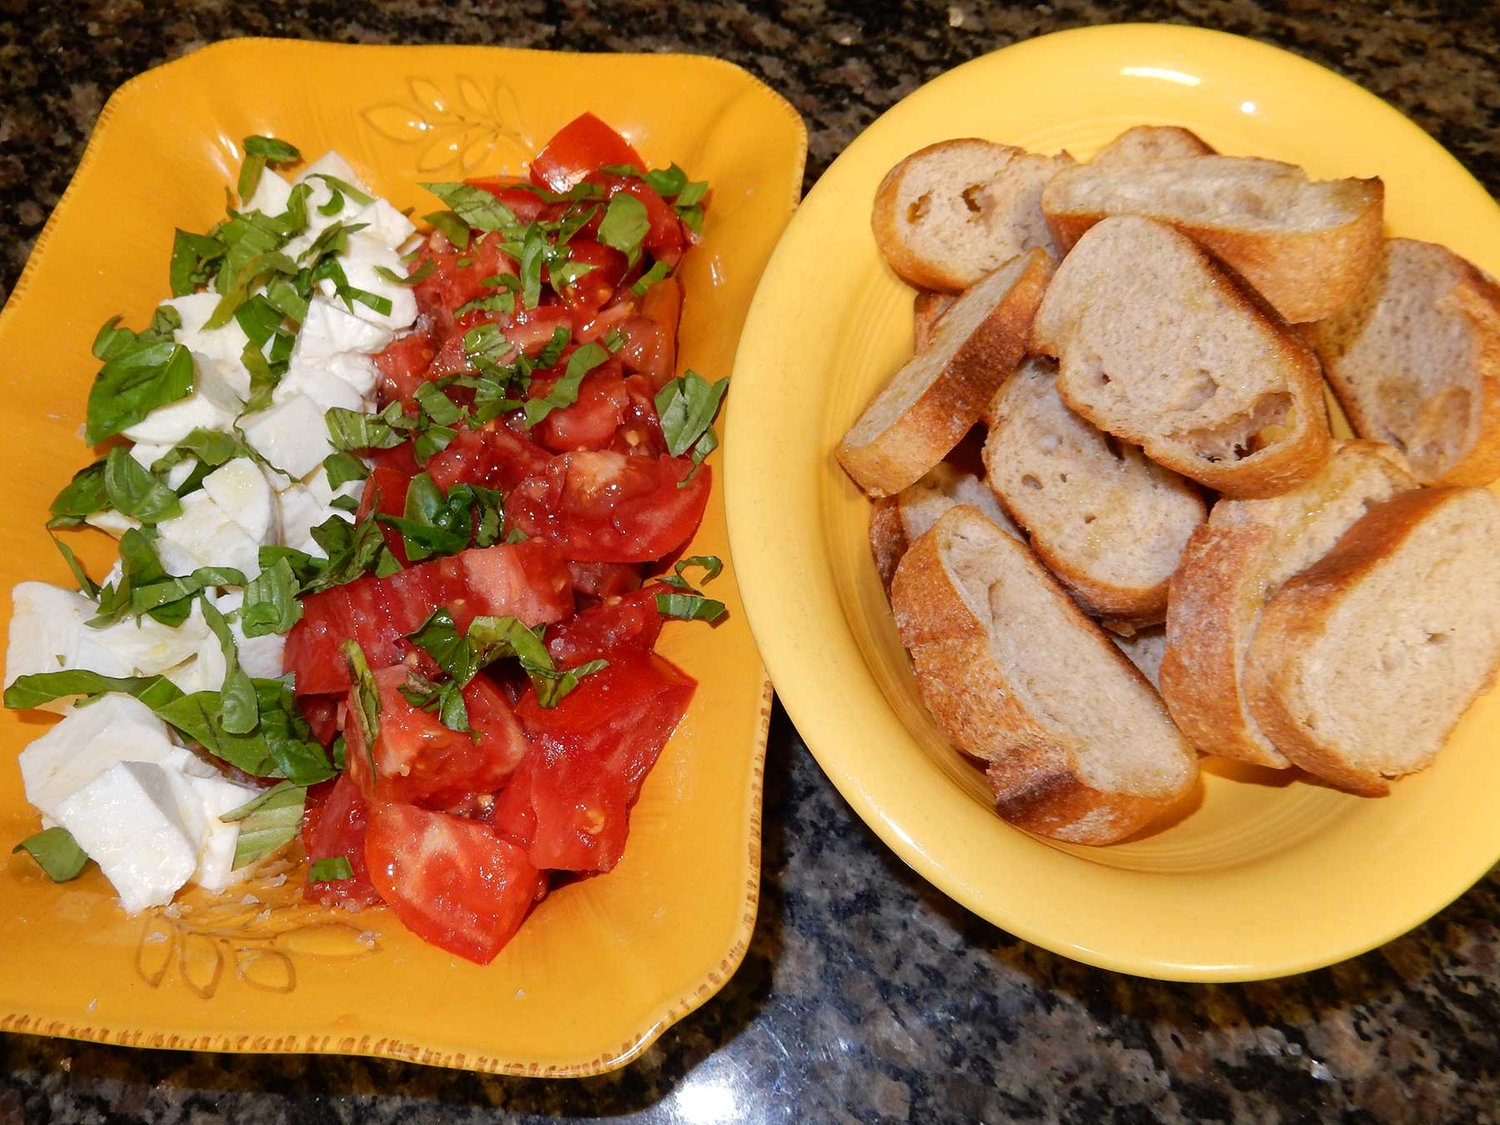 Tomatoes and fresh mozzarella (caprese) salad with basil and crisp crostini slices